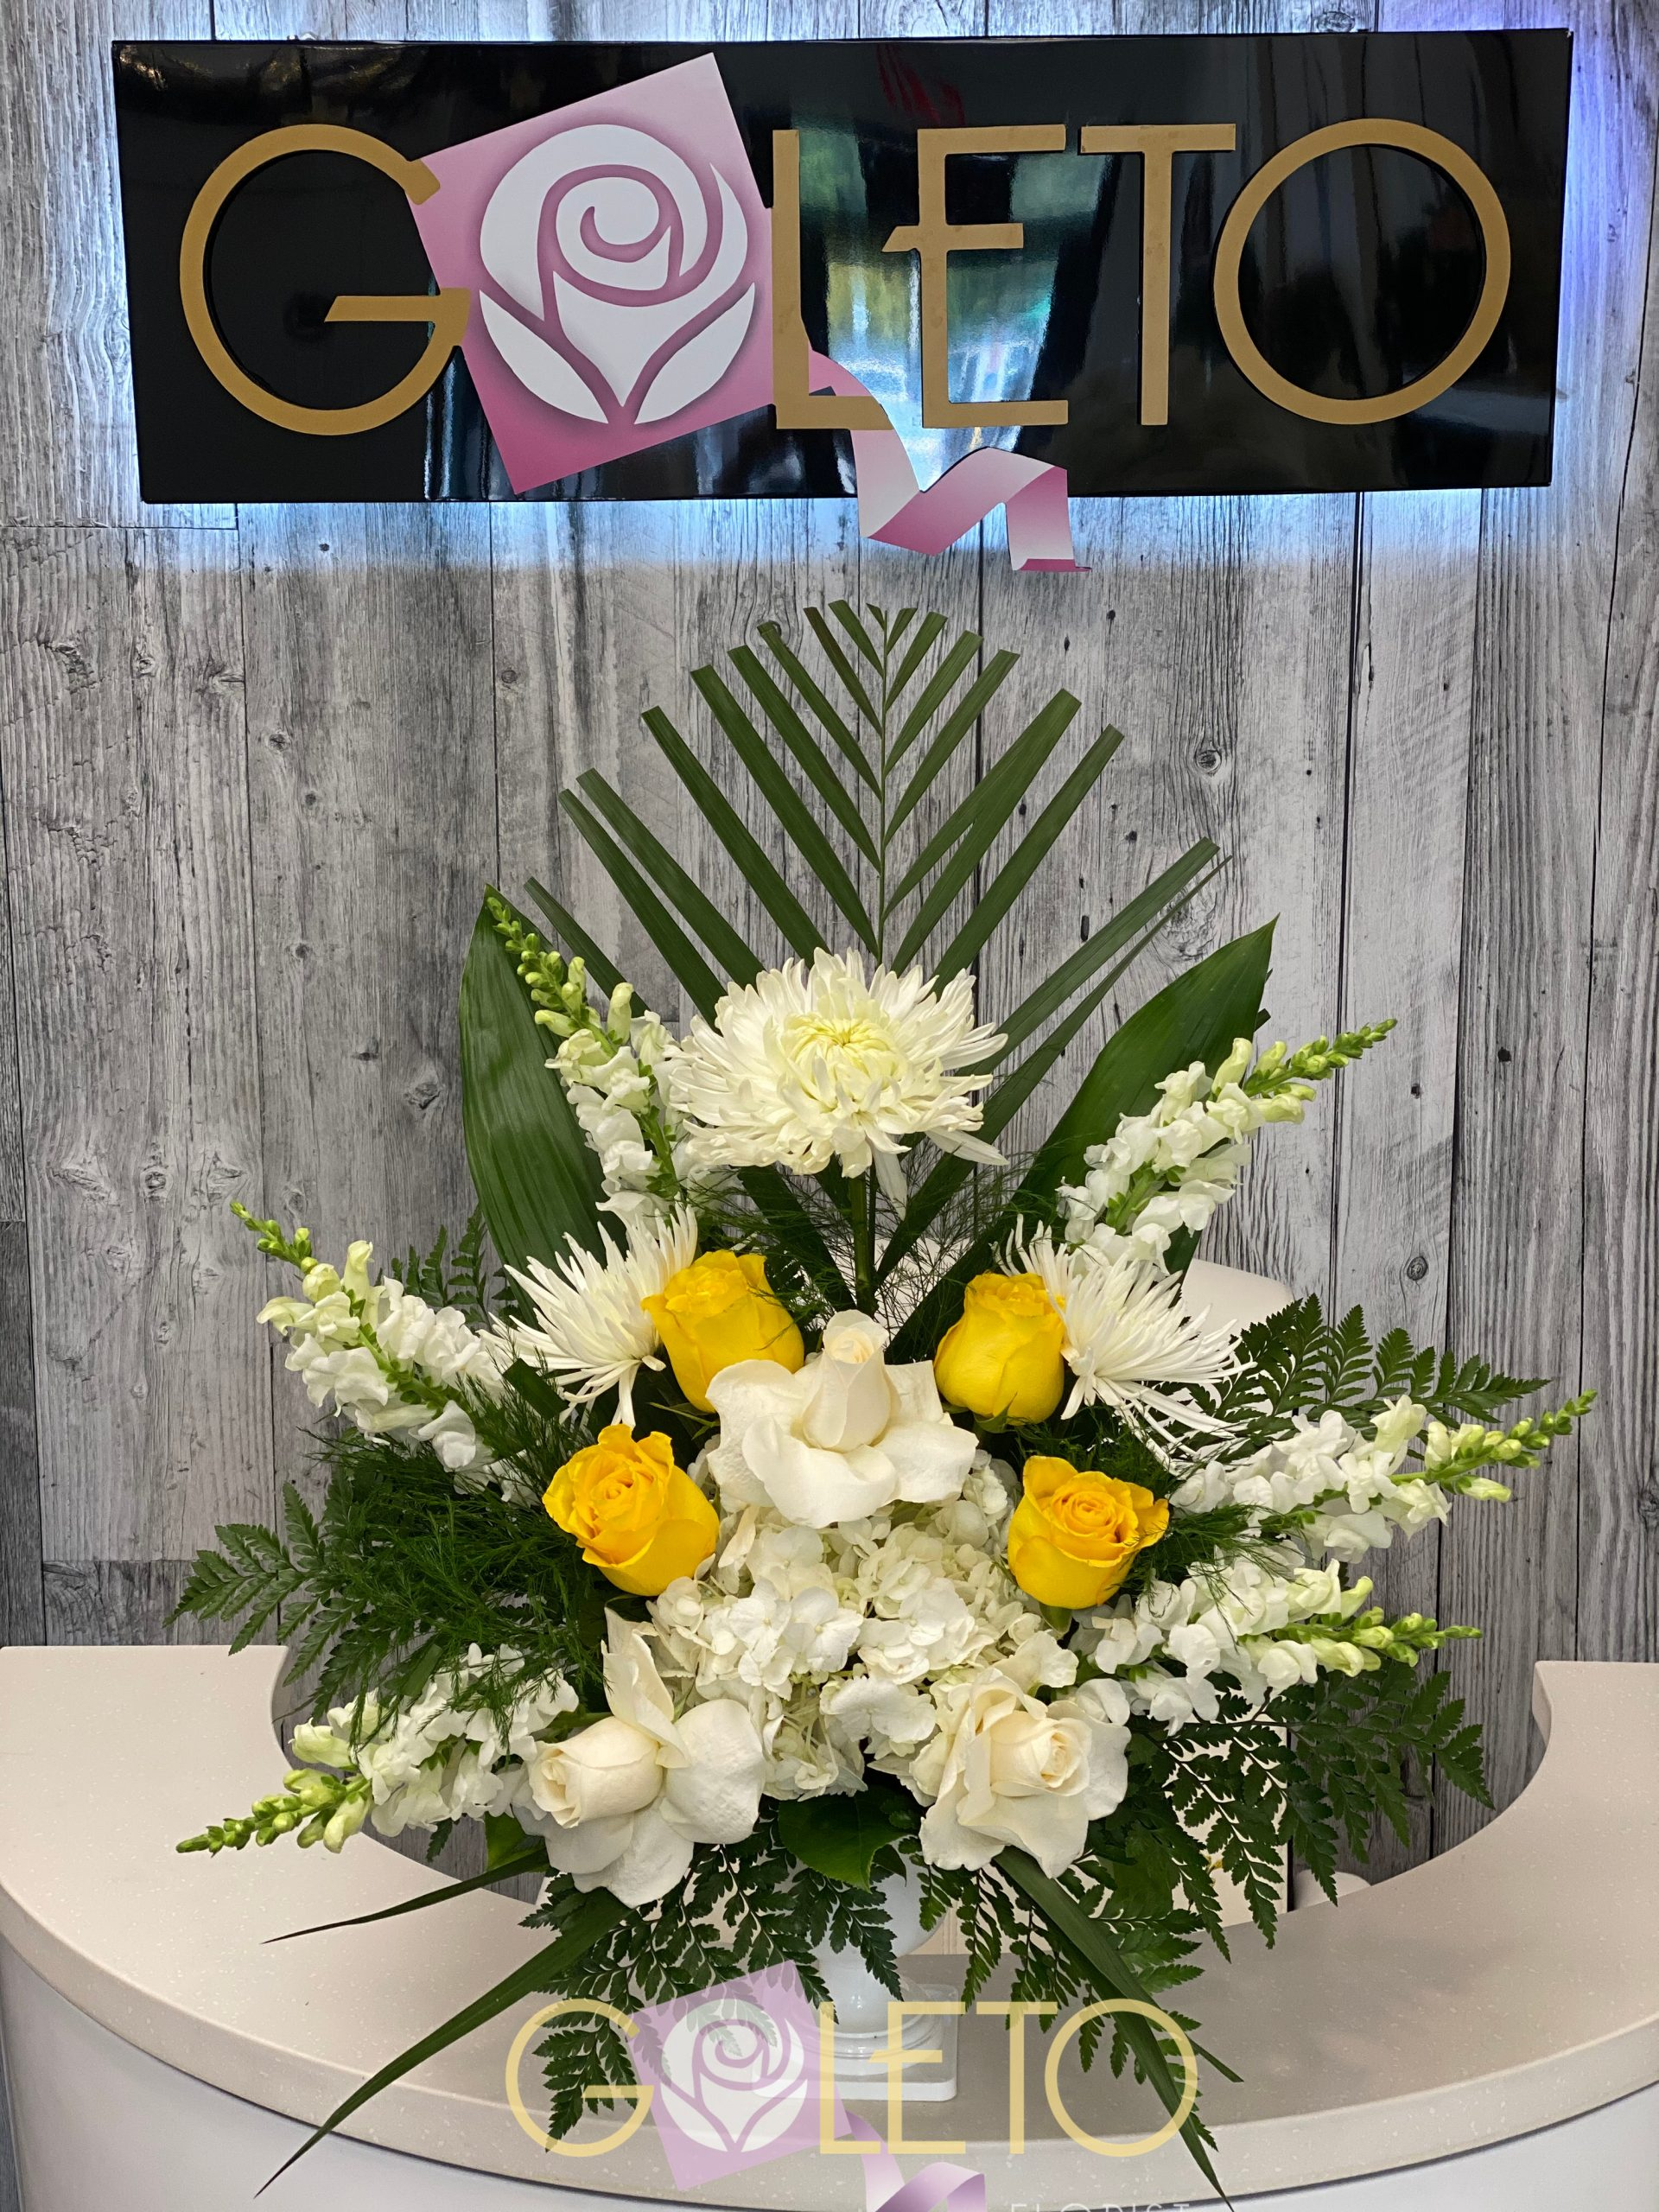 goleto-flowers-richmond-hill-flower-shop1